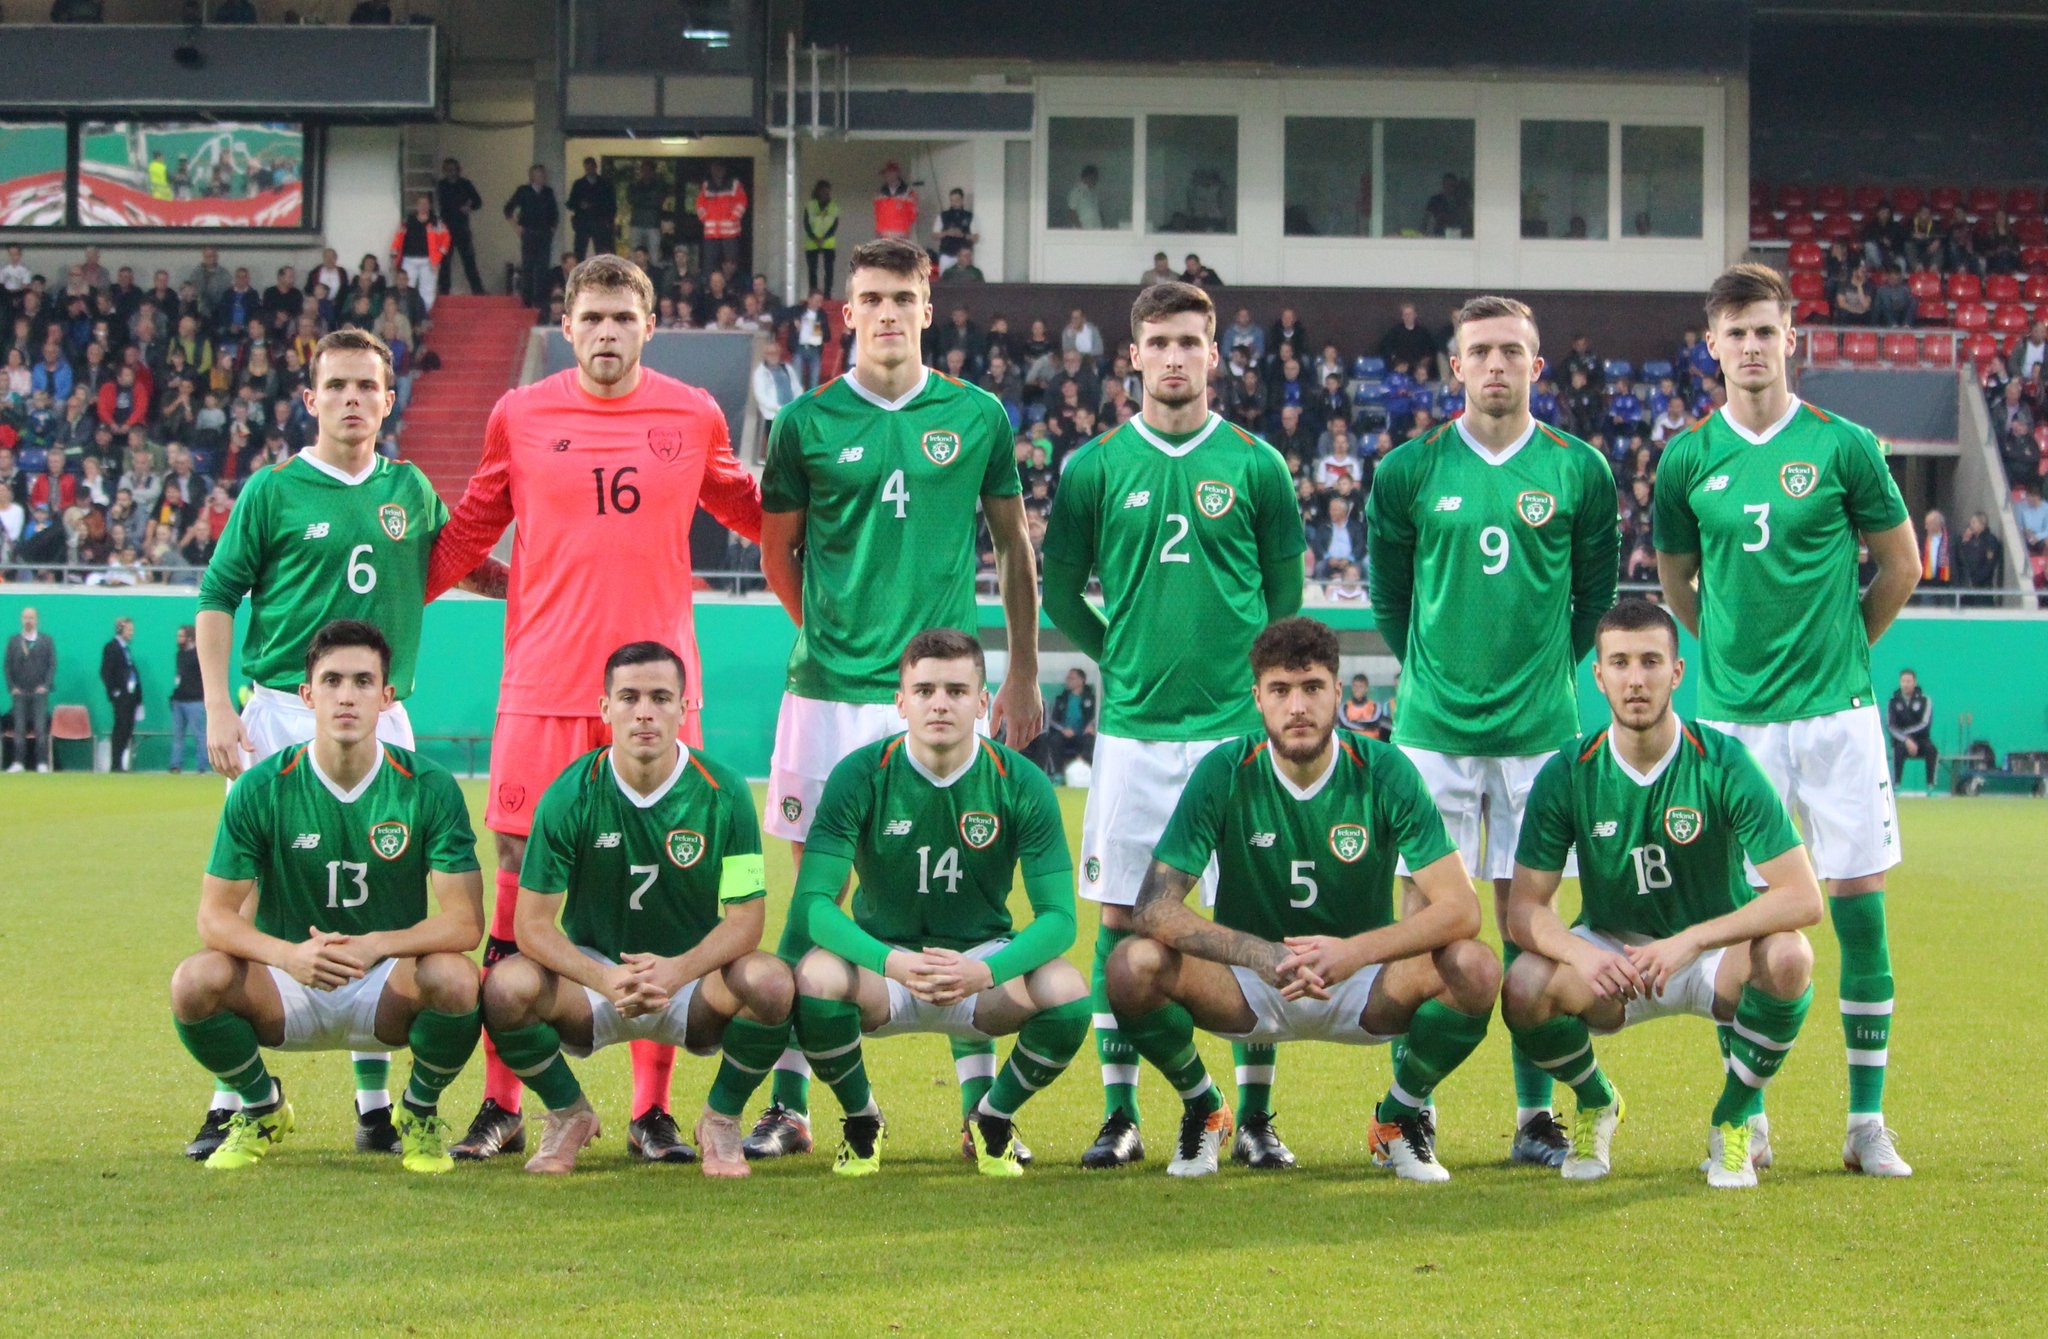 Sweeney represents Ireland U21s